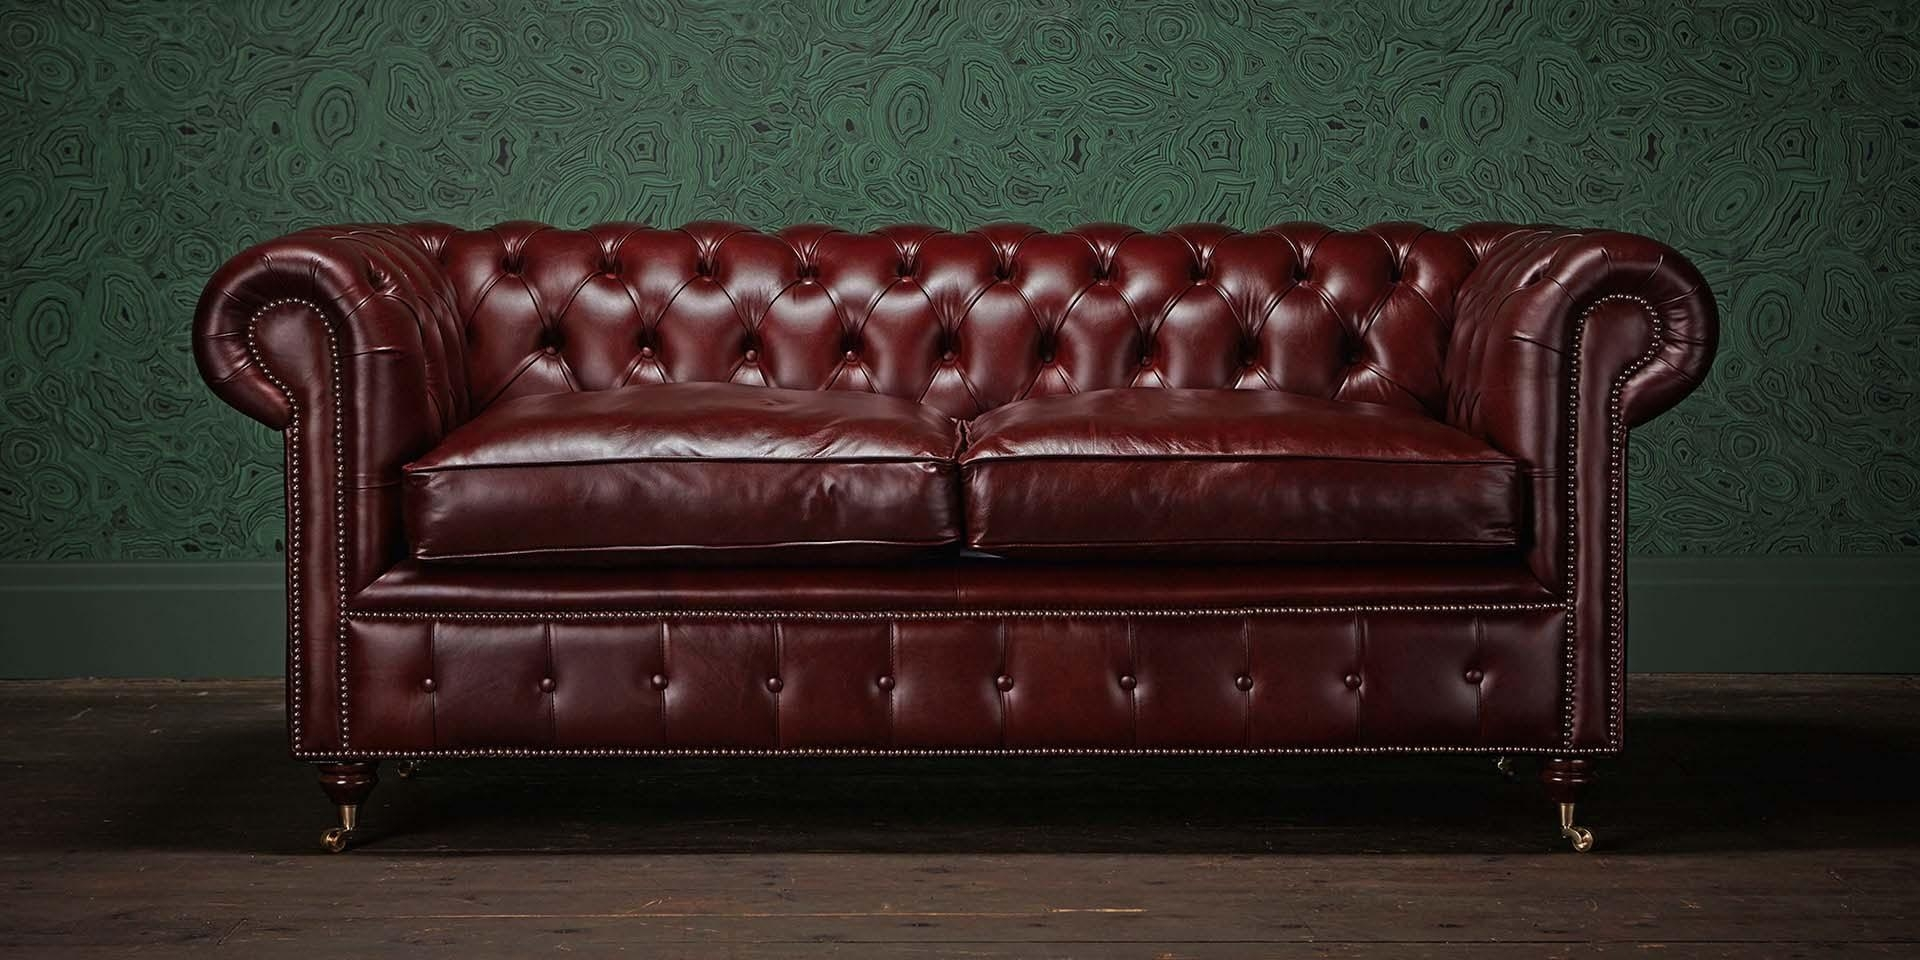 Chesterfields Of England   The Original Chesterfield Company Throughout Chesterfield Sofa And Chairs (View 8 of 20)